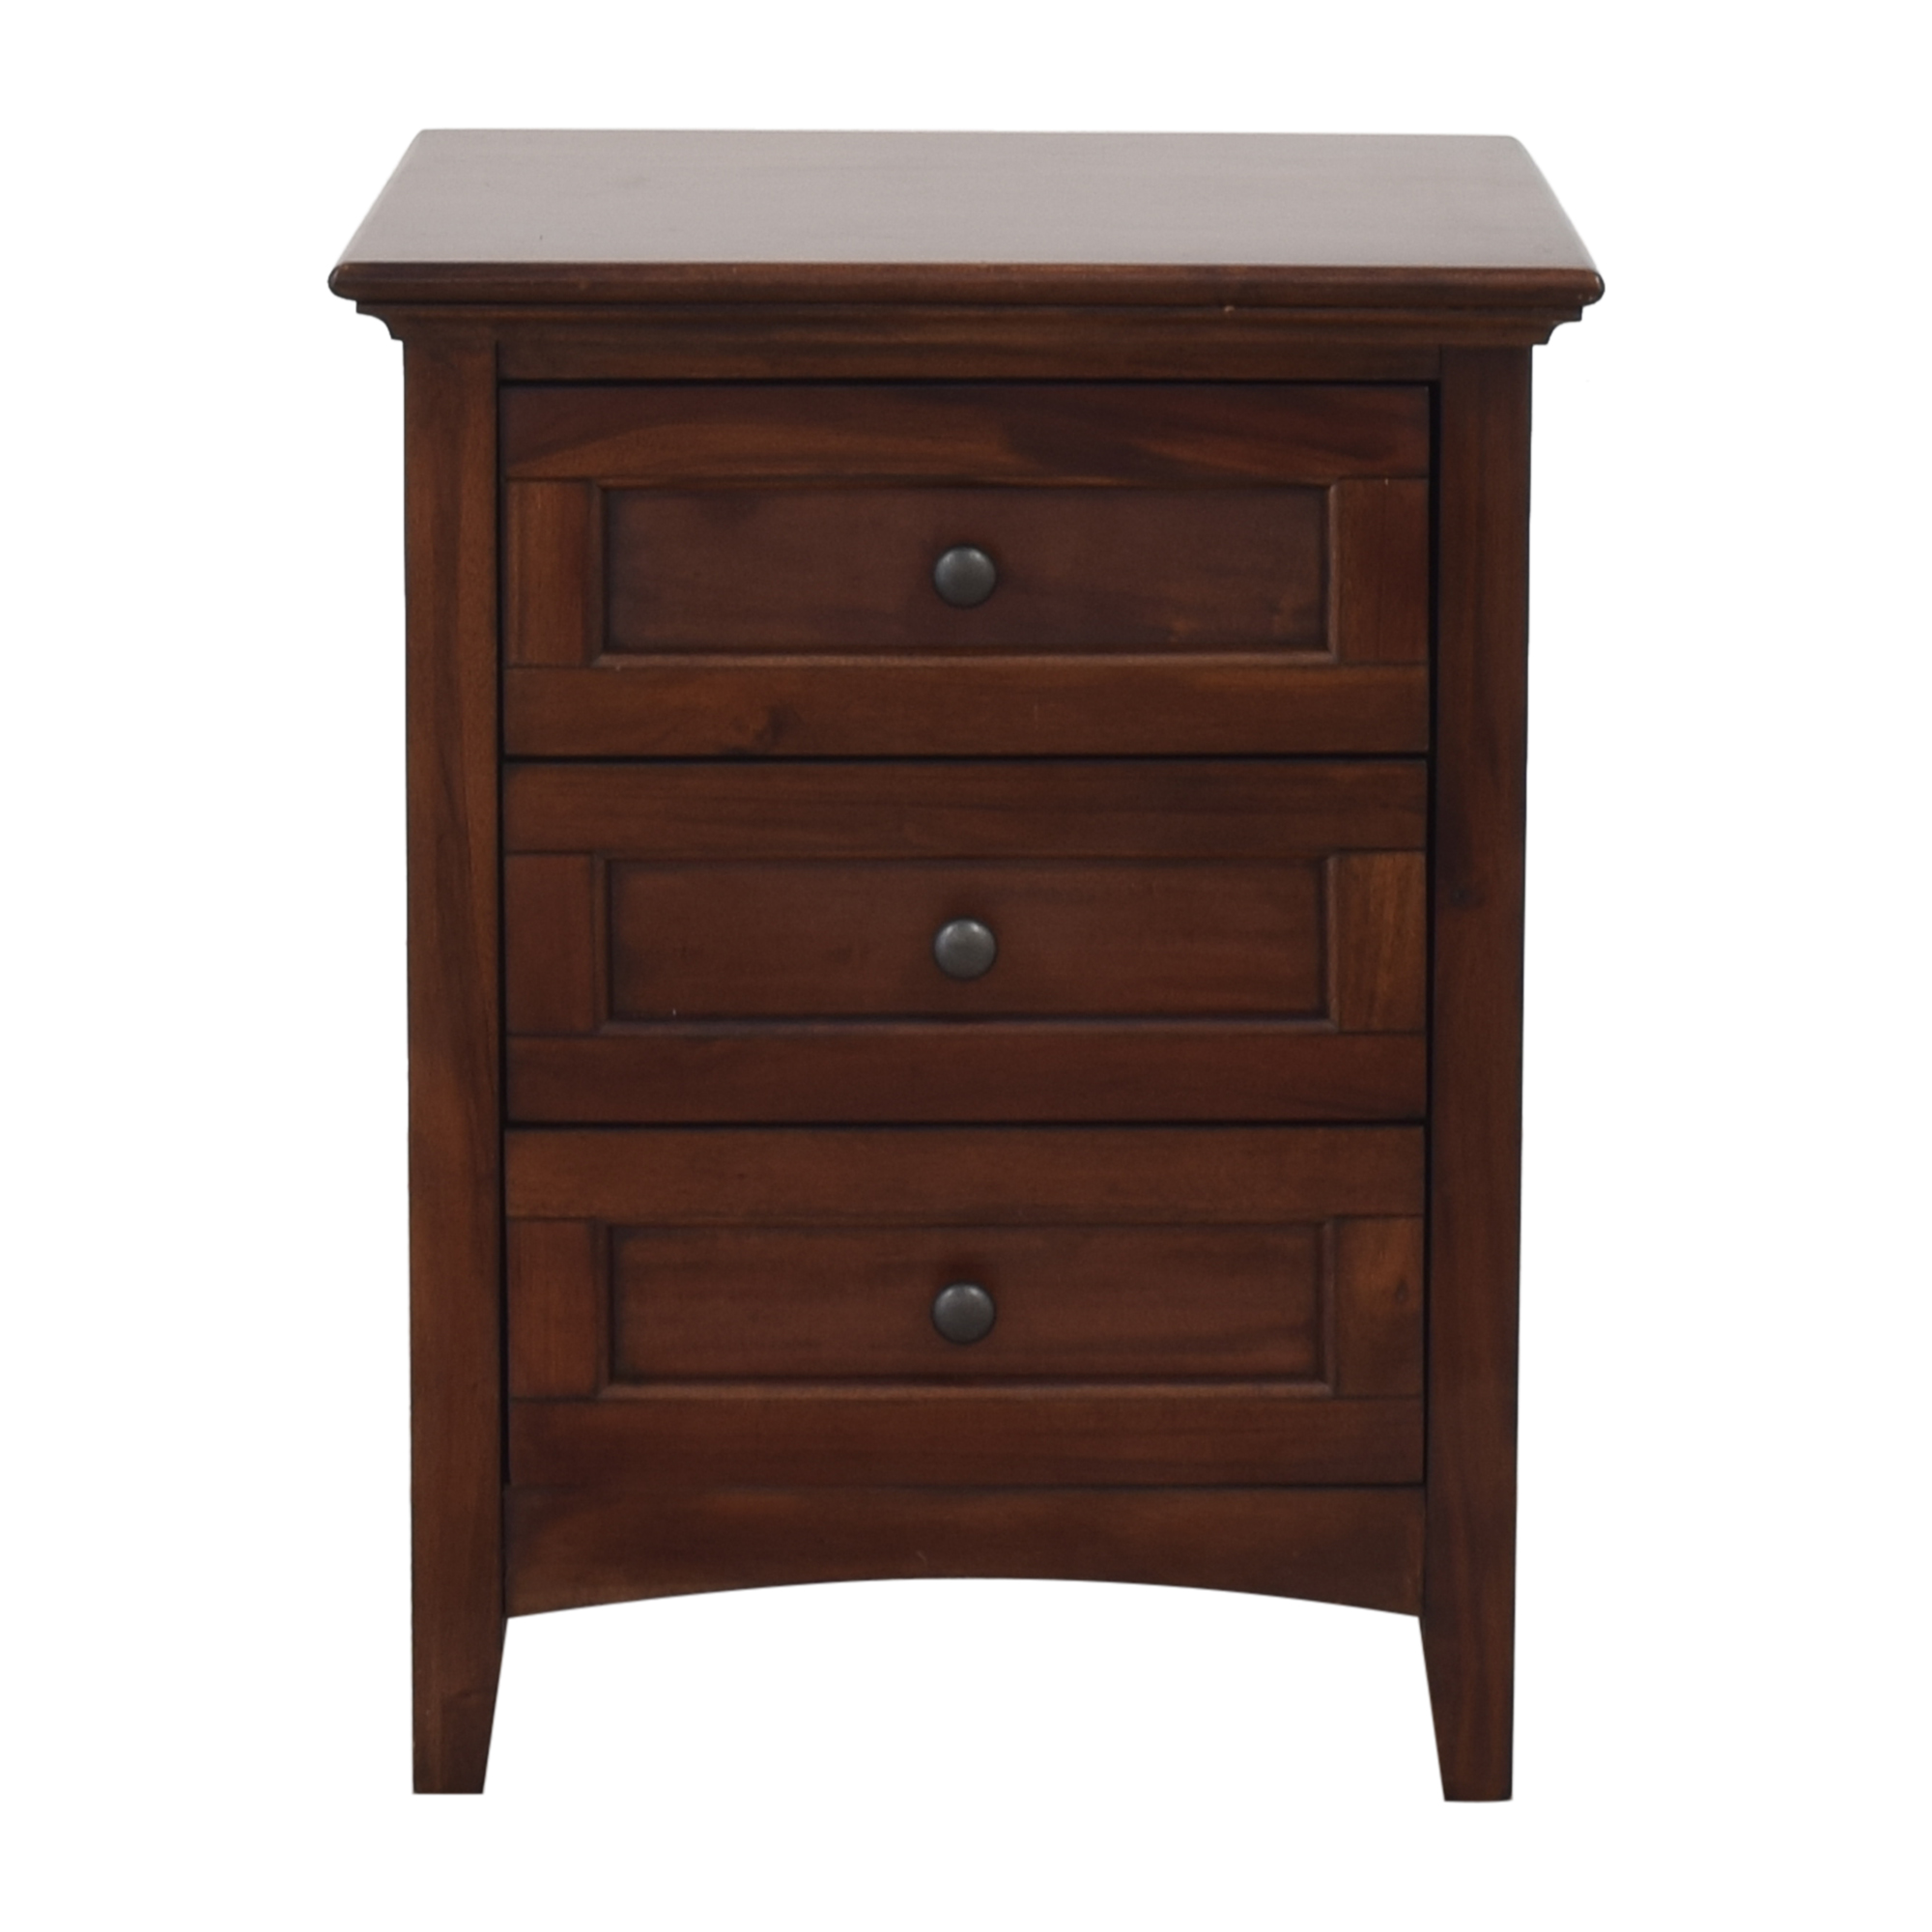 A-America Wood Furniture A-America Three Drawer Nightstand second hand